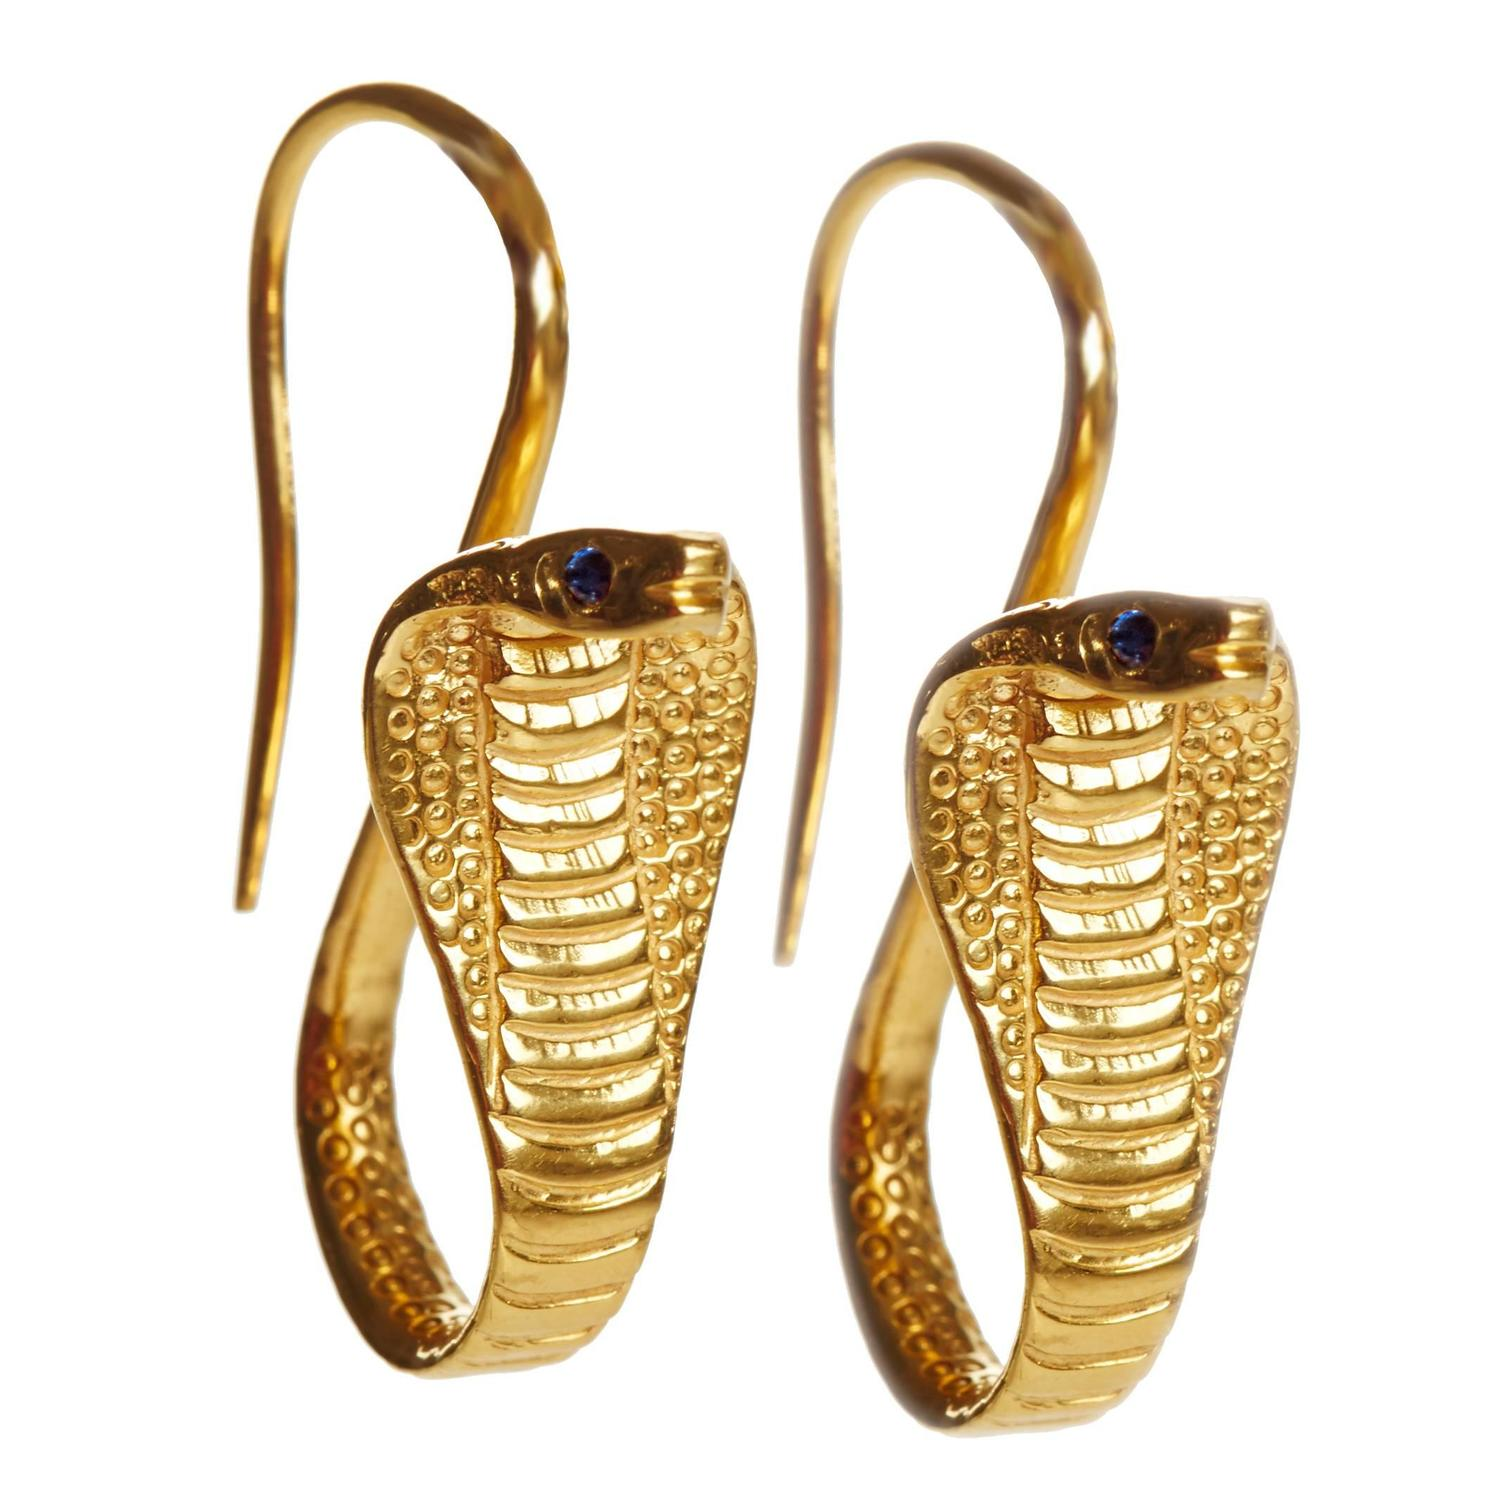 18K Gold Cobra Earrings with Sapphire Eyes at 1stdibs